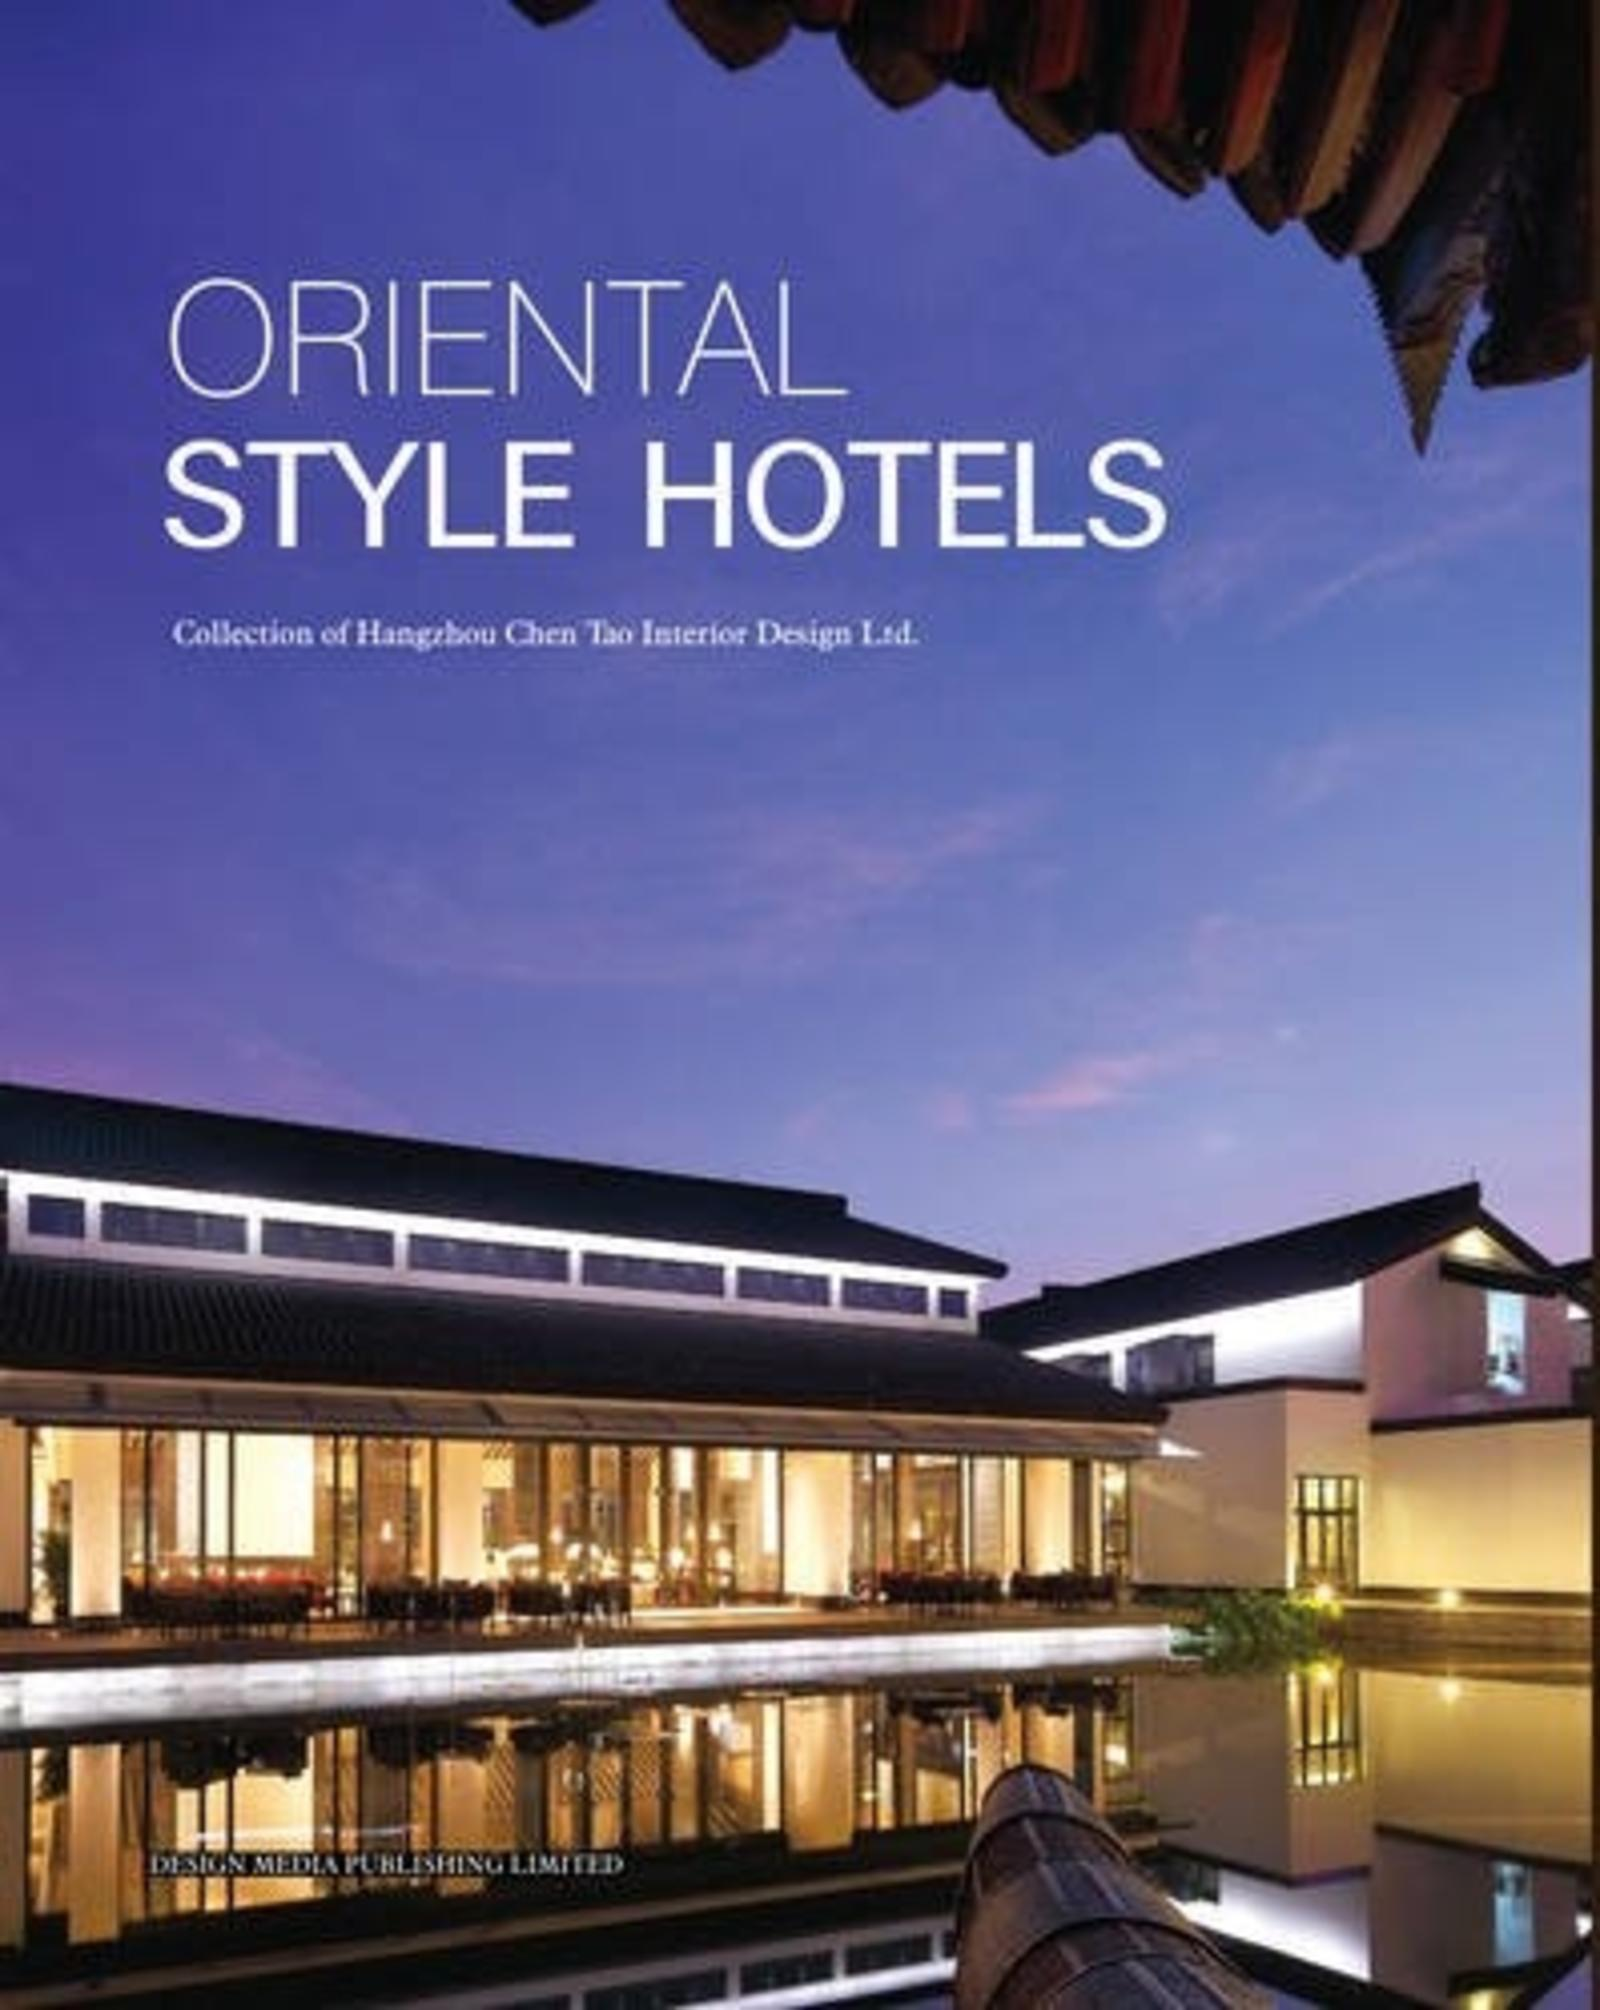 ORIENTAL STYLE HOTELS. COLLECTION OF HANGZHOU CHEN TAO INTERIOR DESIGN LTD - COLLECTION OF HANGZHOU